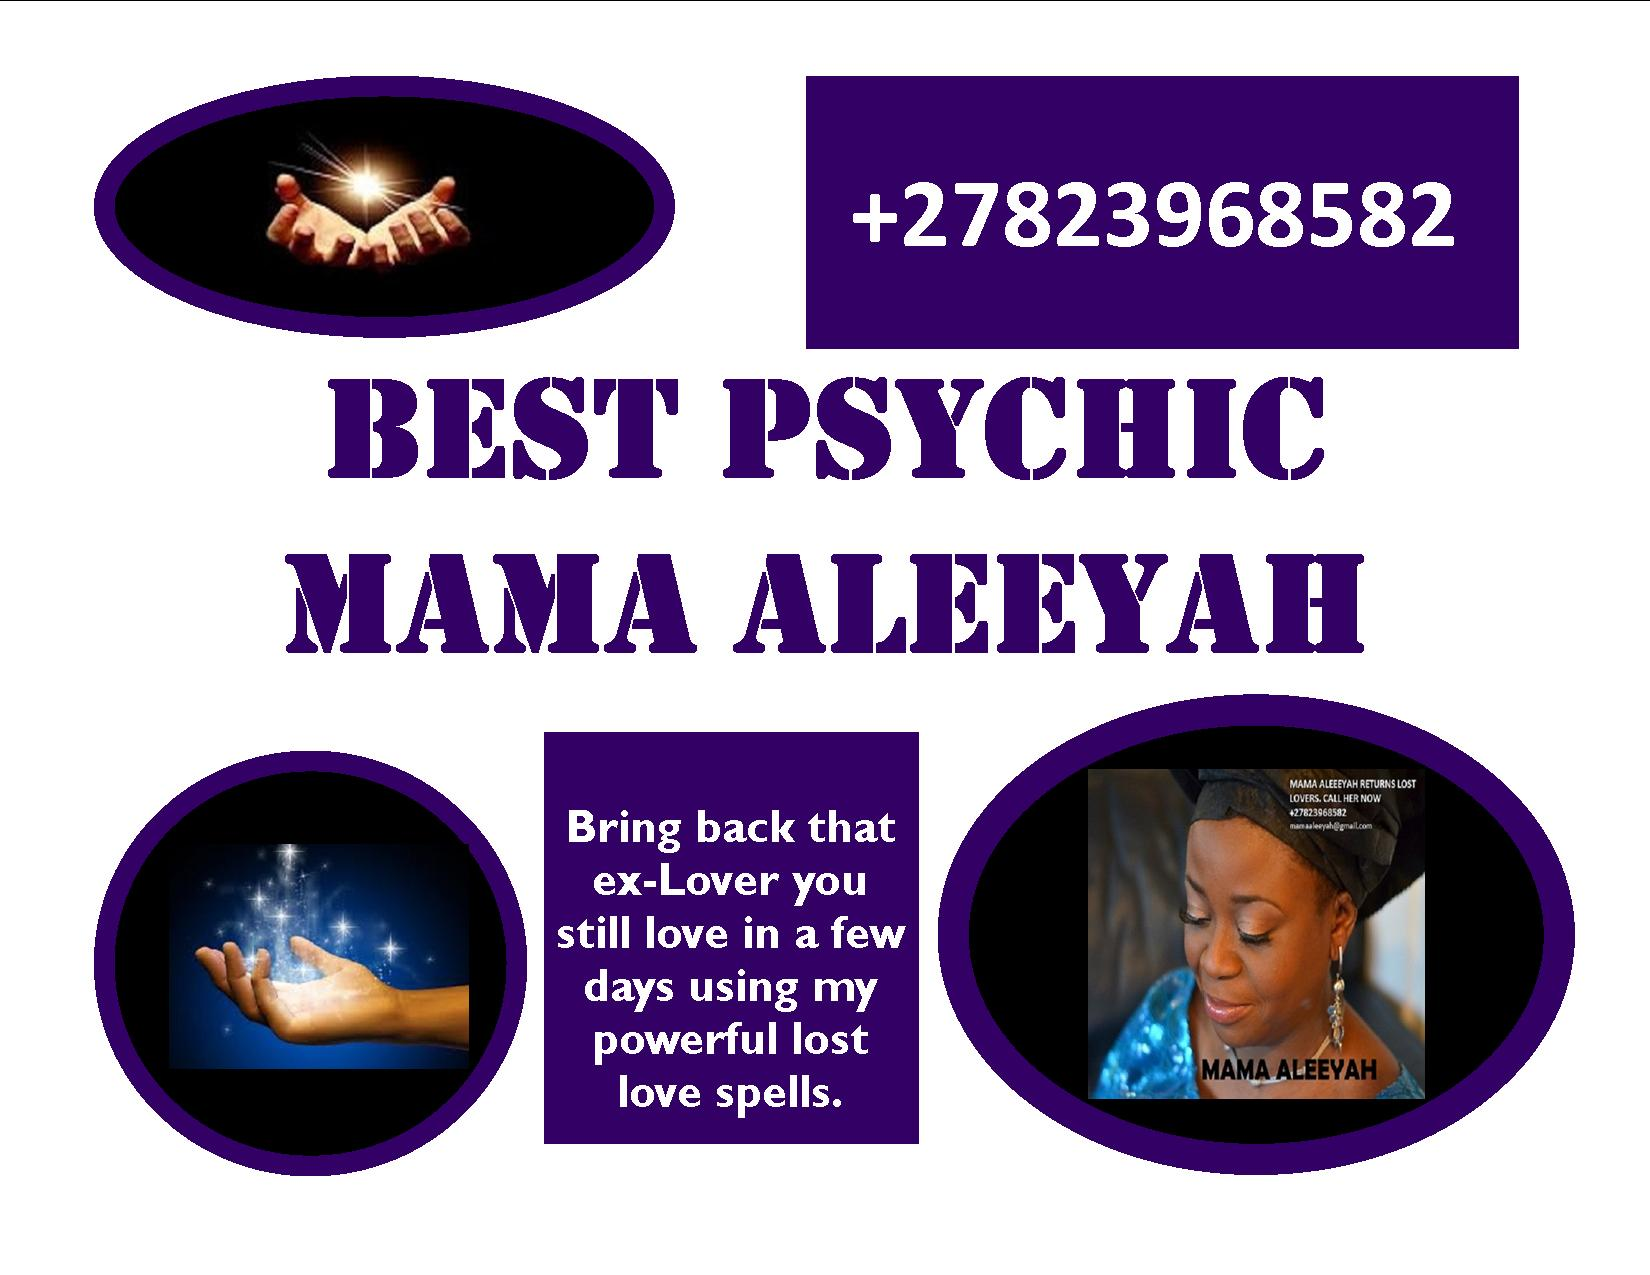 mamaaleeyah@gmail com | Bark Profile and Reviews